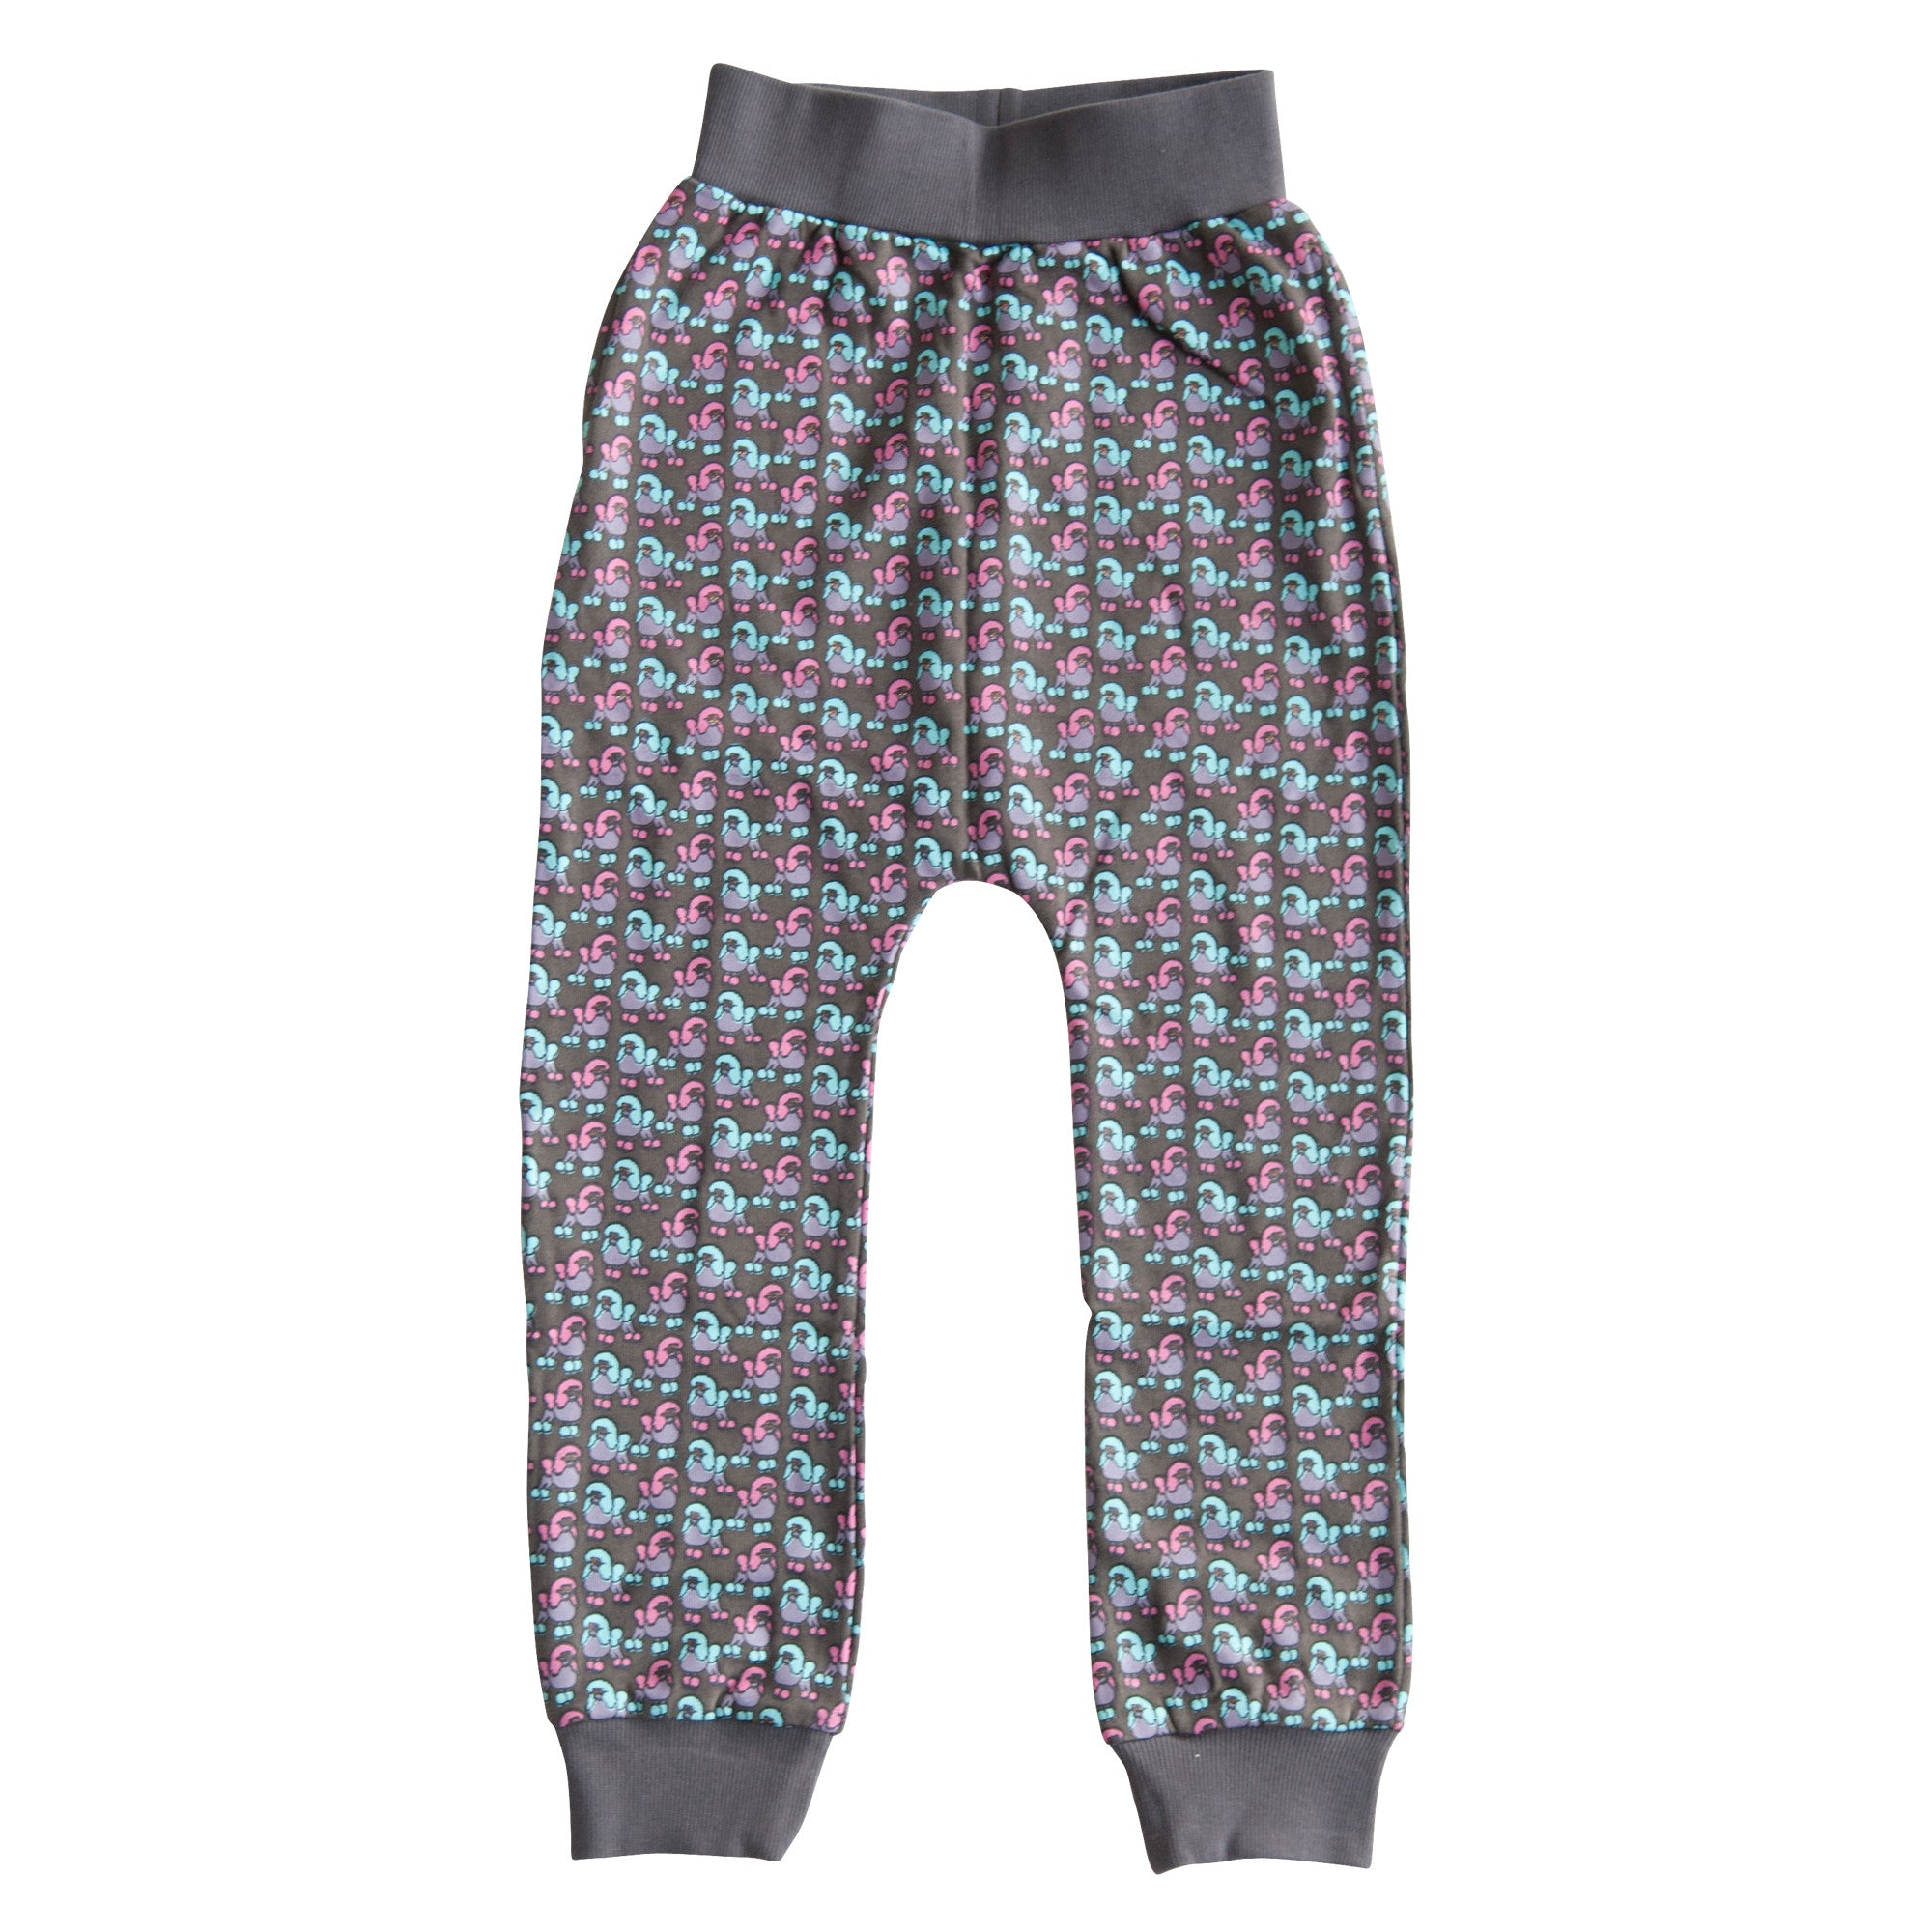 GARDNER AND THE GANG - The Slouchy Pants Courtney / Charcoal